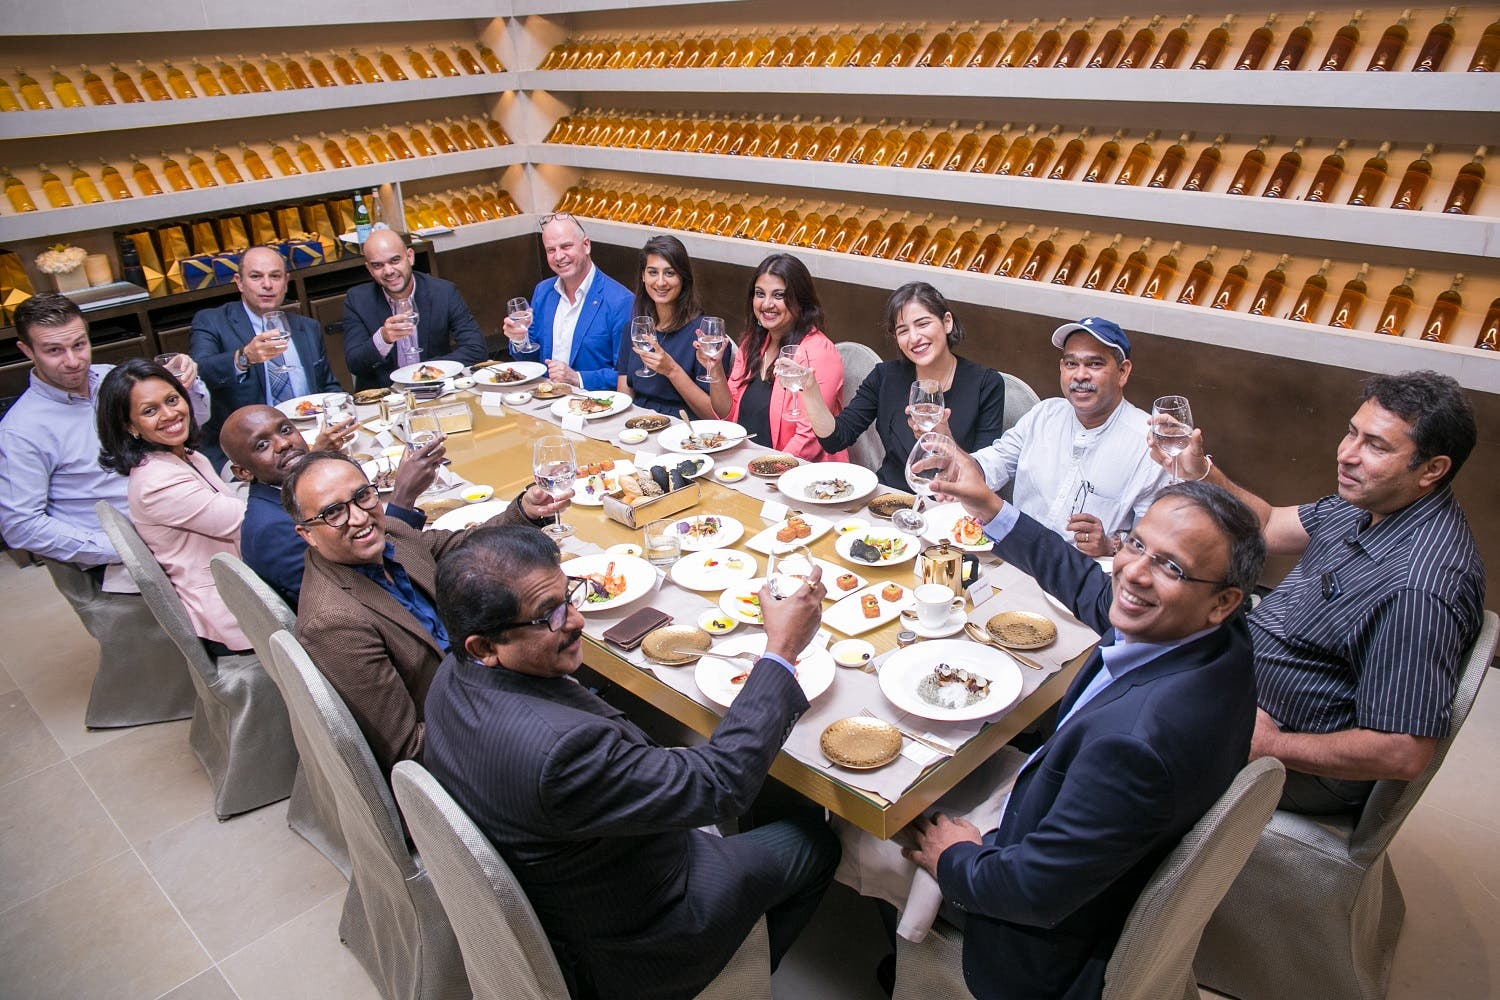 Radwan hosting an annual Iftar event for media personnel at the Armani Hotel. (Photo courtesy: Tata Communications)